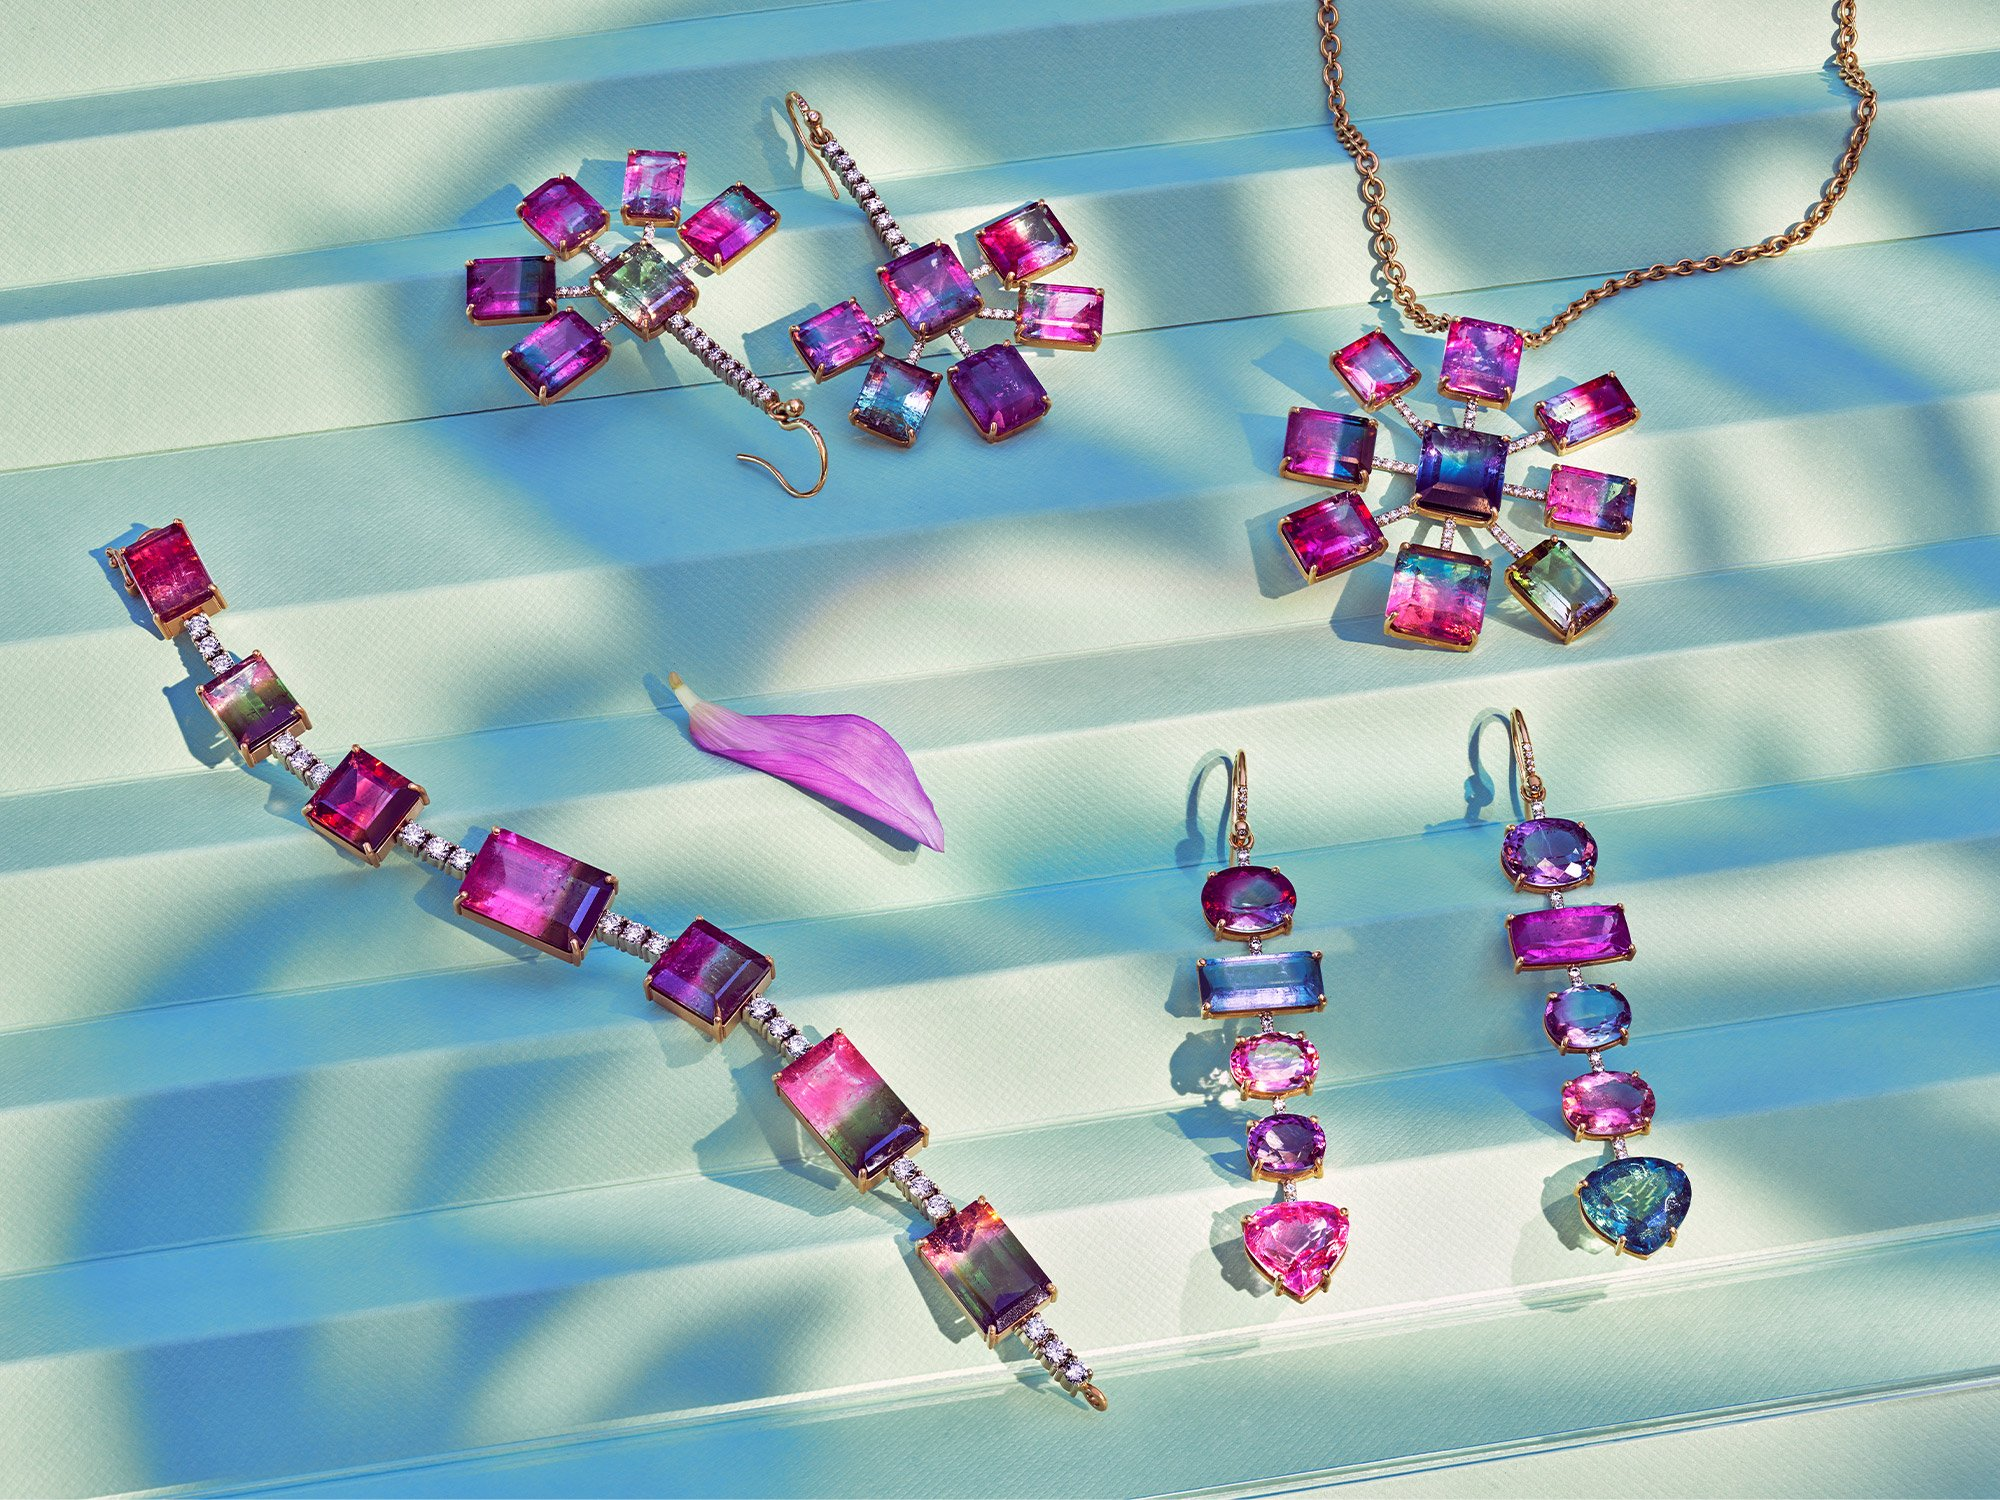 Irene Neuwirth Gemmy gems collection. Semi precious colorful stones resting on textured blue and white backdrop. Art direction by RoAndCo Studio